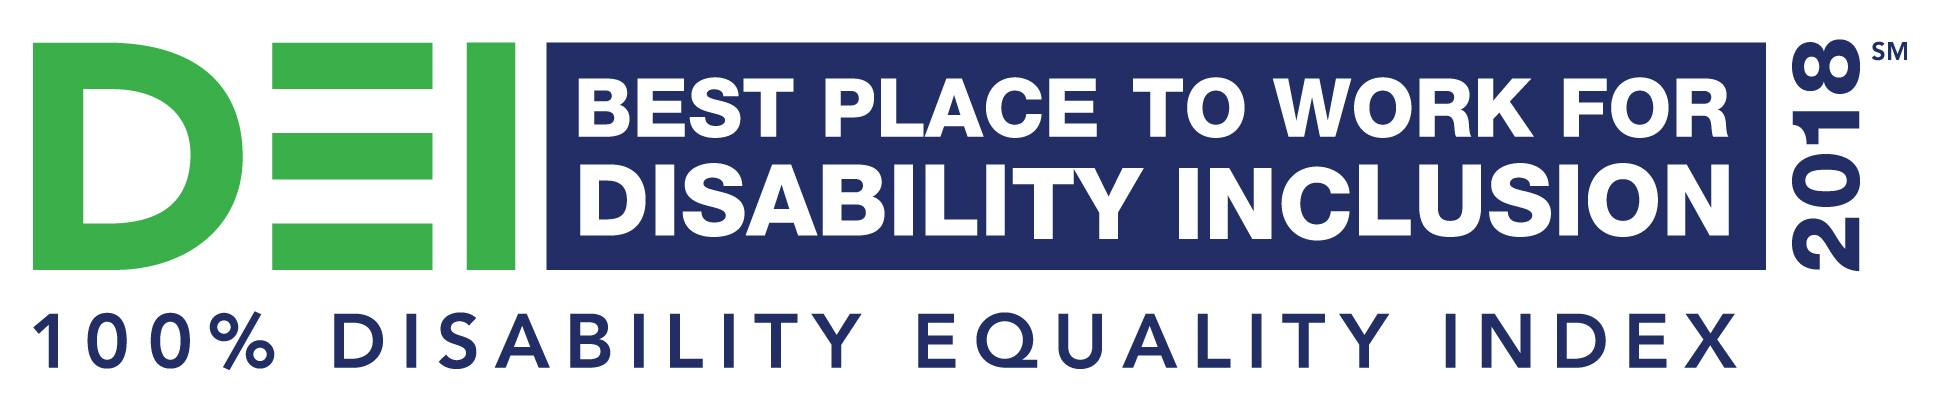 Best Place to Work for Disability Inclusion logo